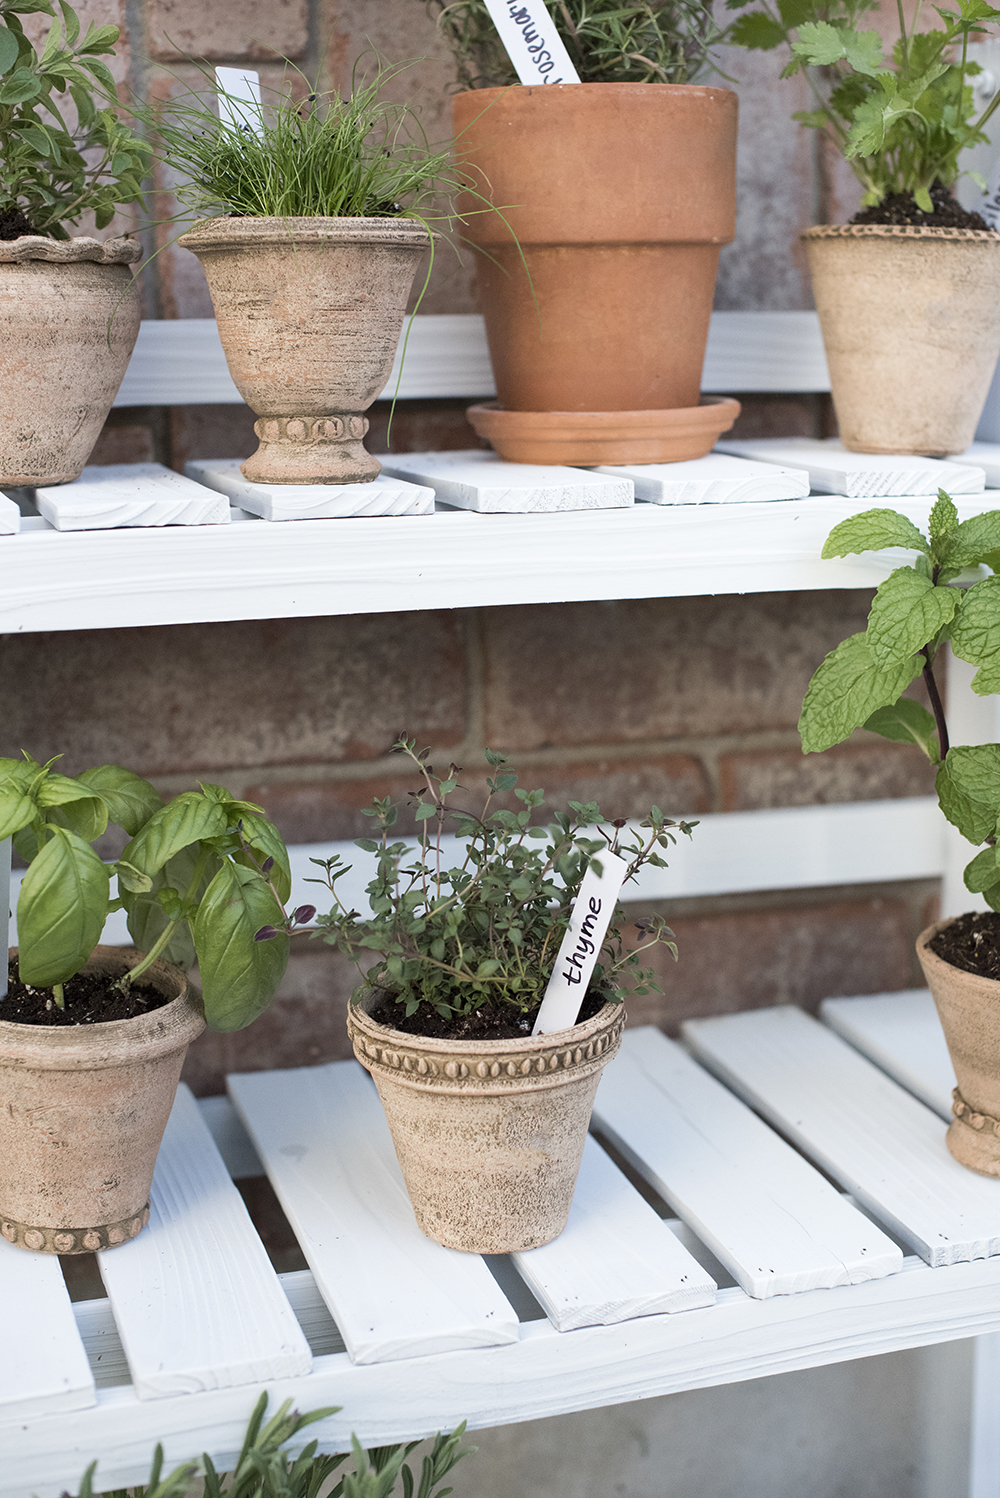 DIY Herb Garden - roomfortuesday.com